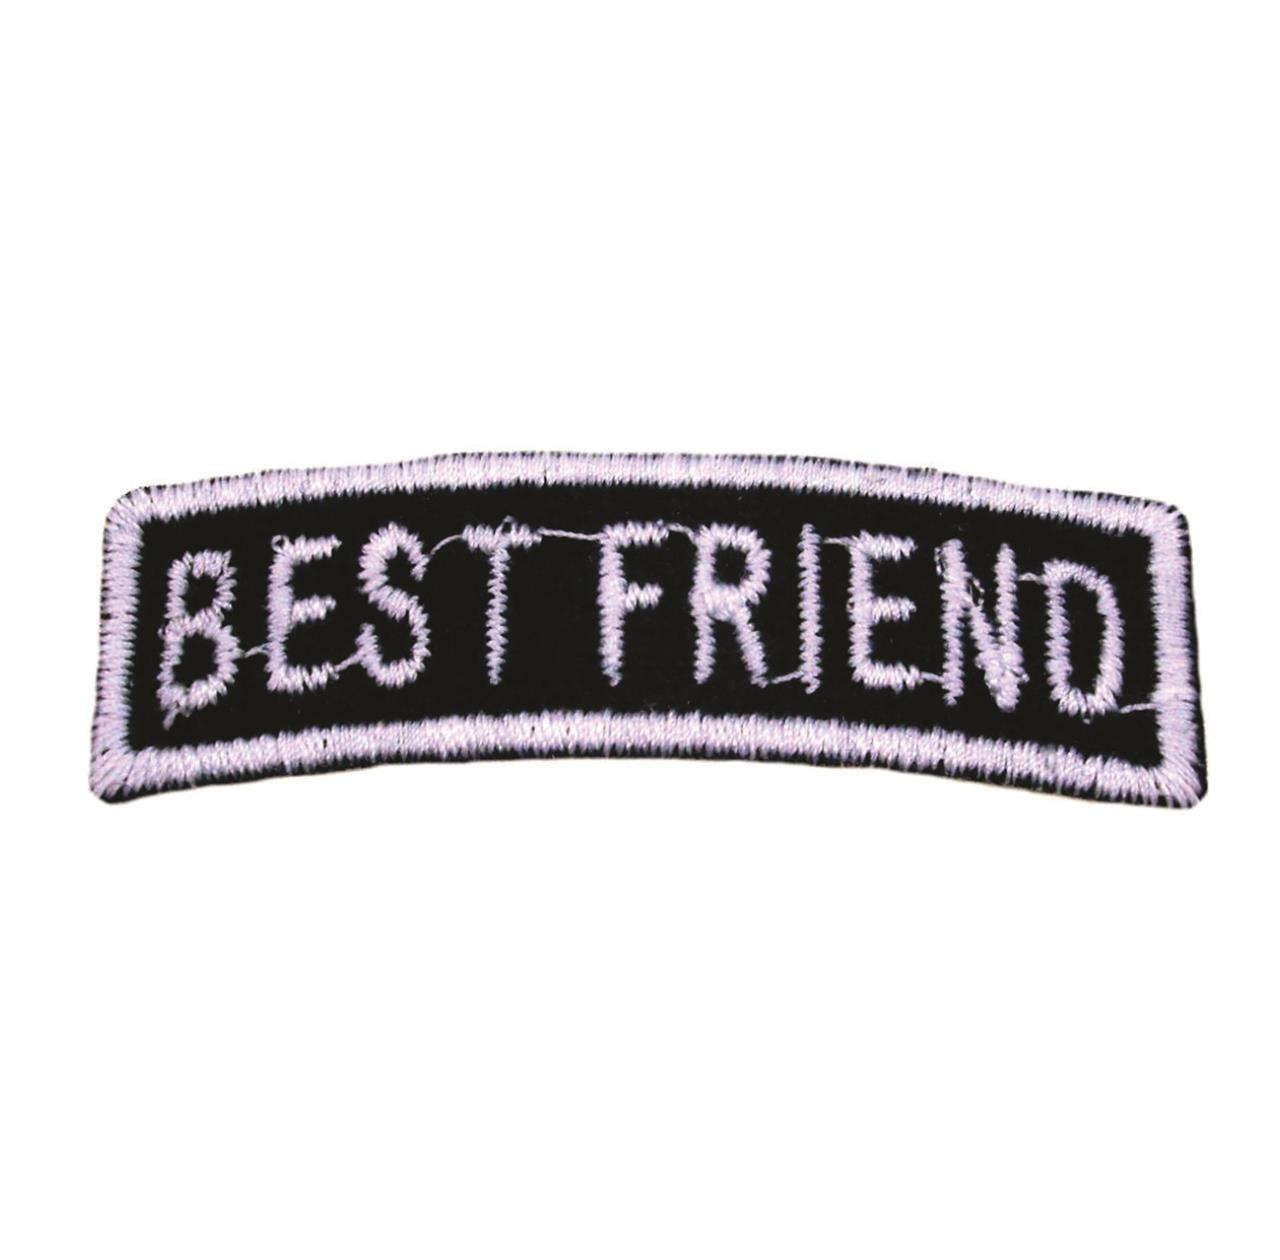 "Termocolante ""Etiqueta Best Friend"""